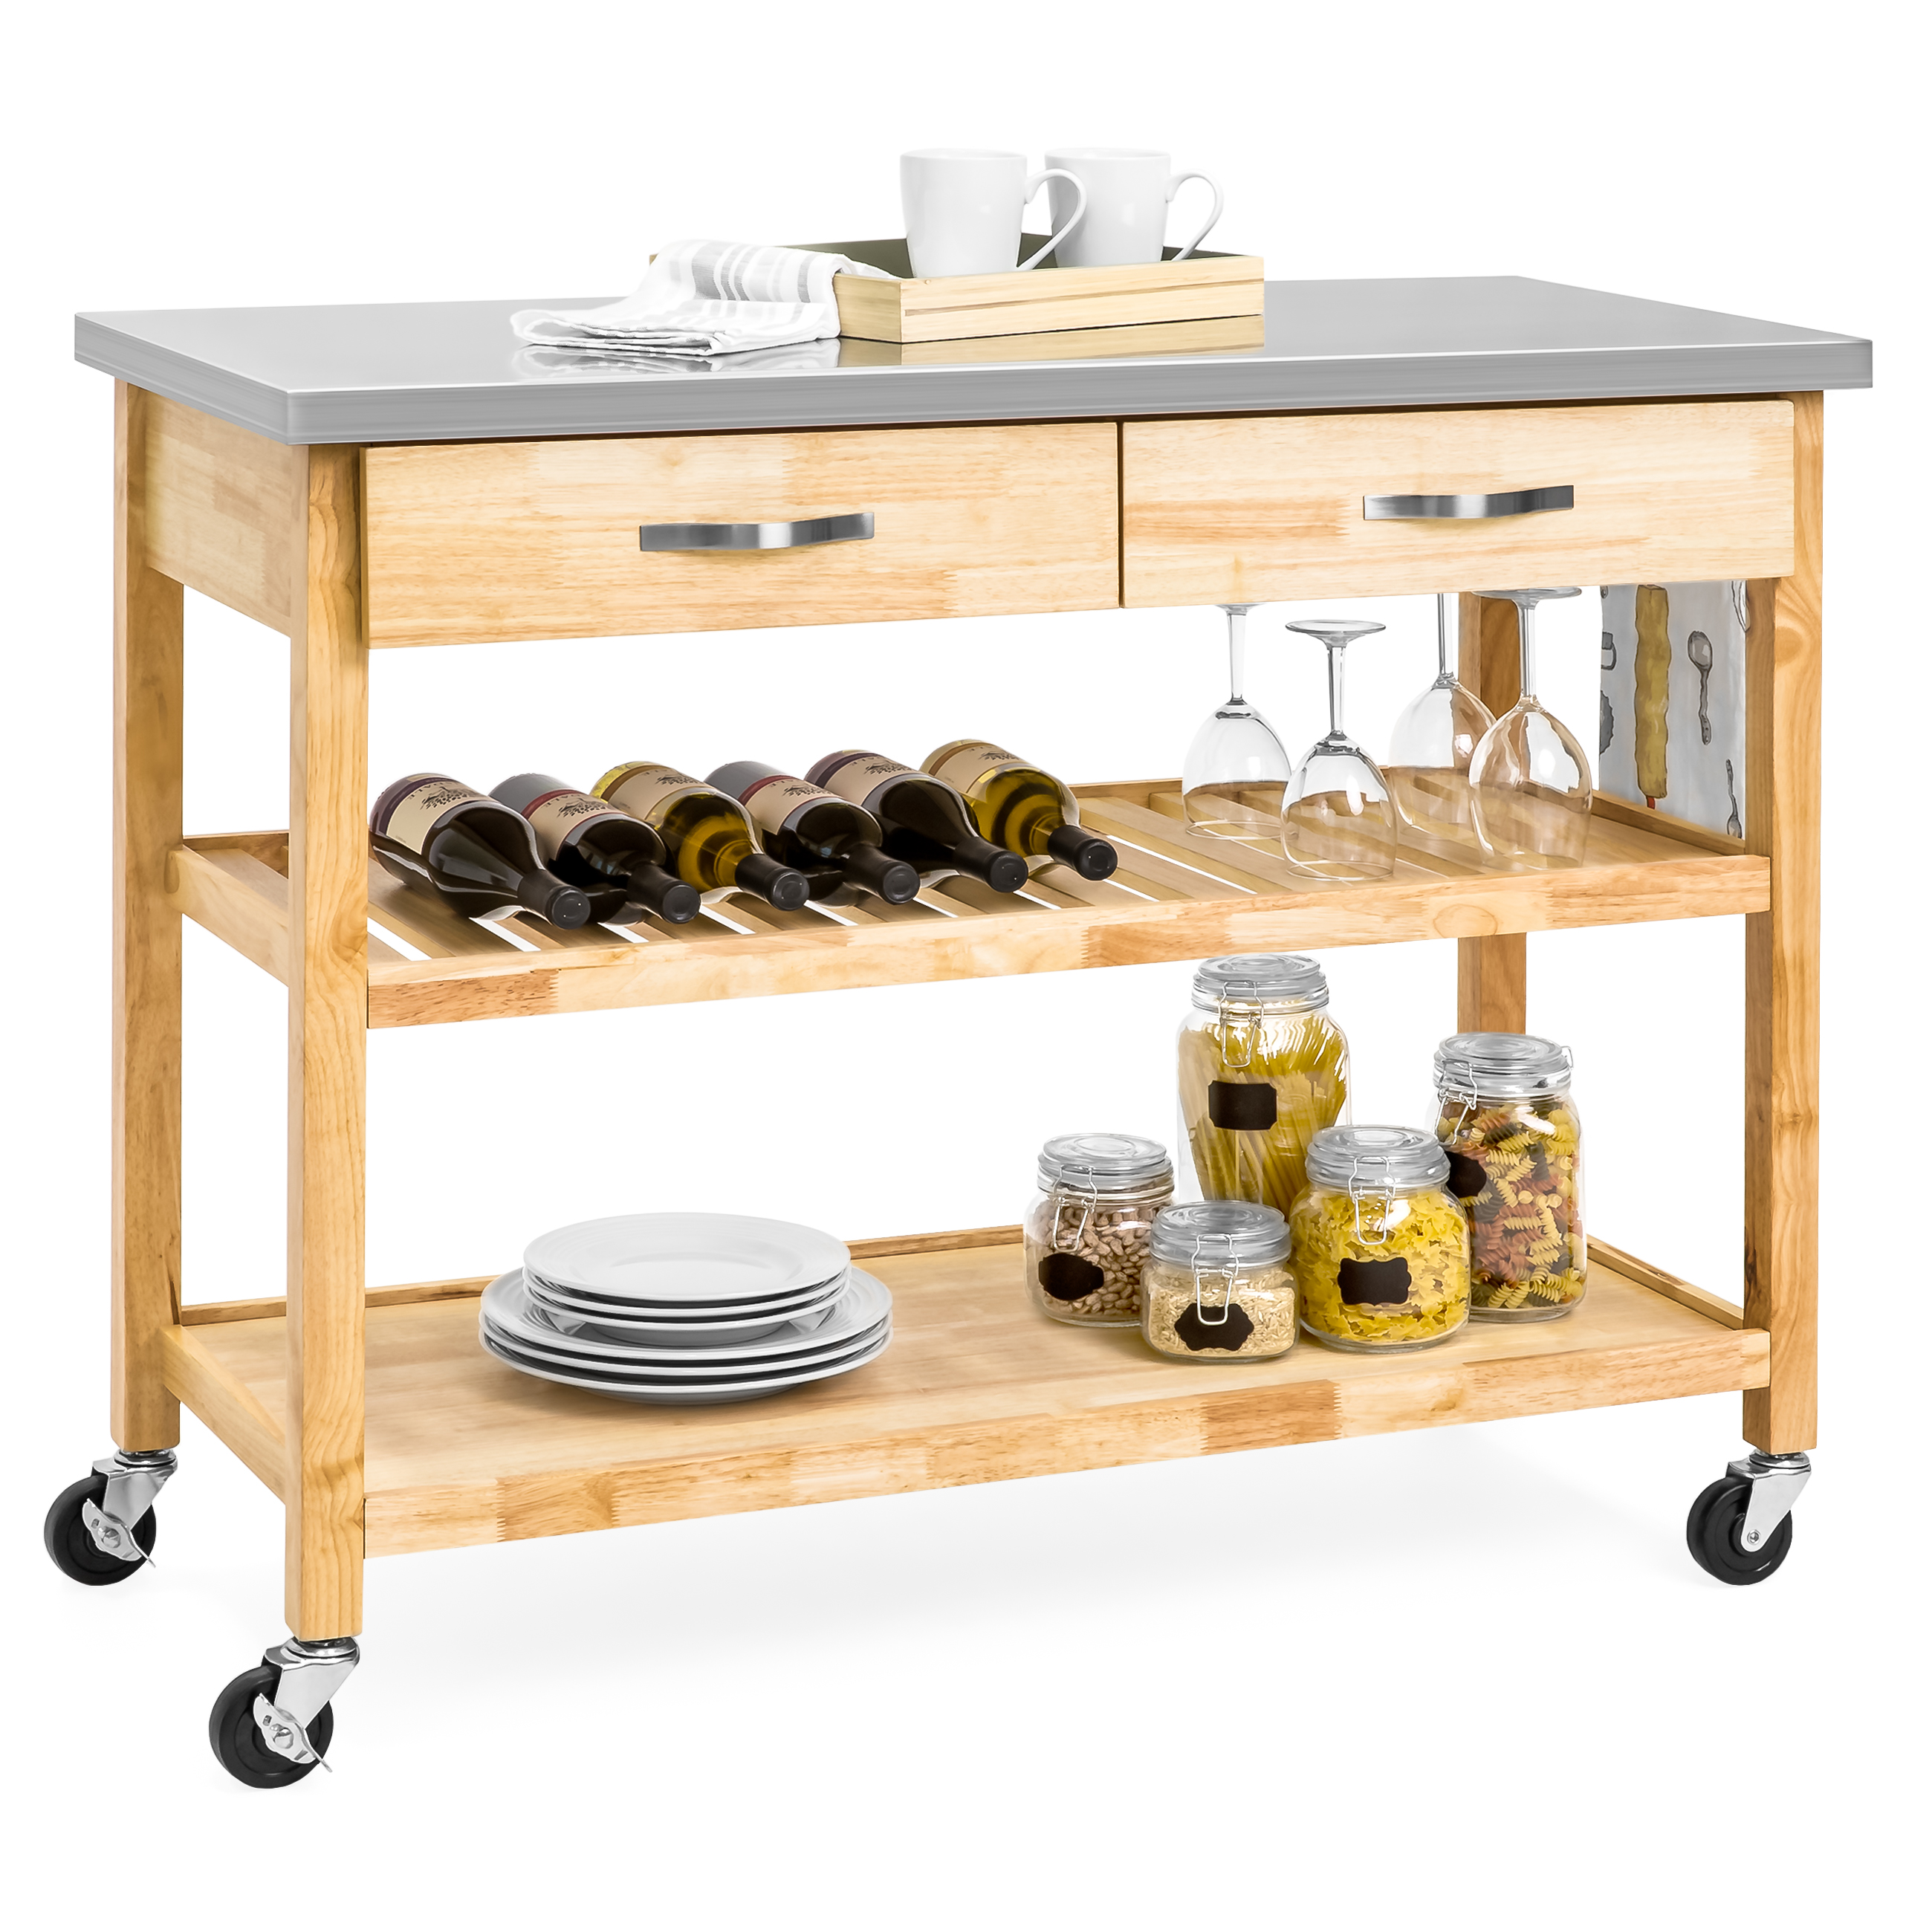 Best Choice Products 3-Tier Wood Rolling Kitchen Island Utility Serving Cart w  Stainless Steel Countertop Natural by Best Choice Products